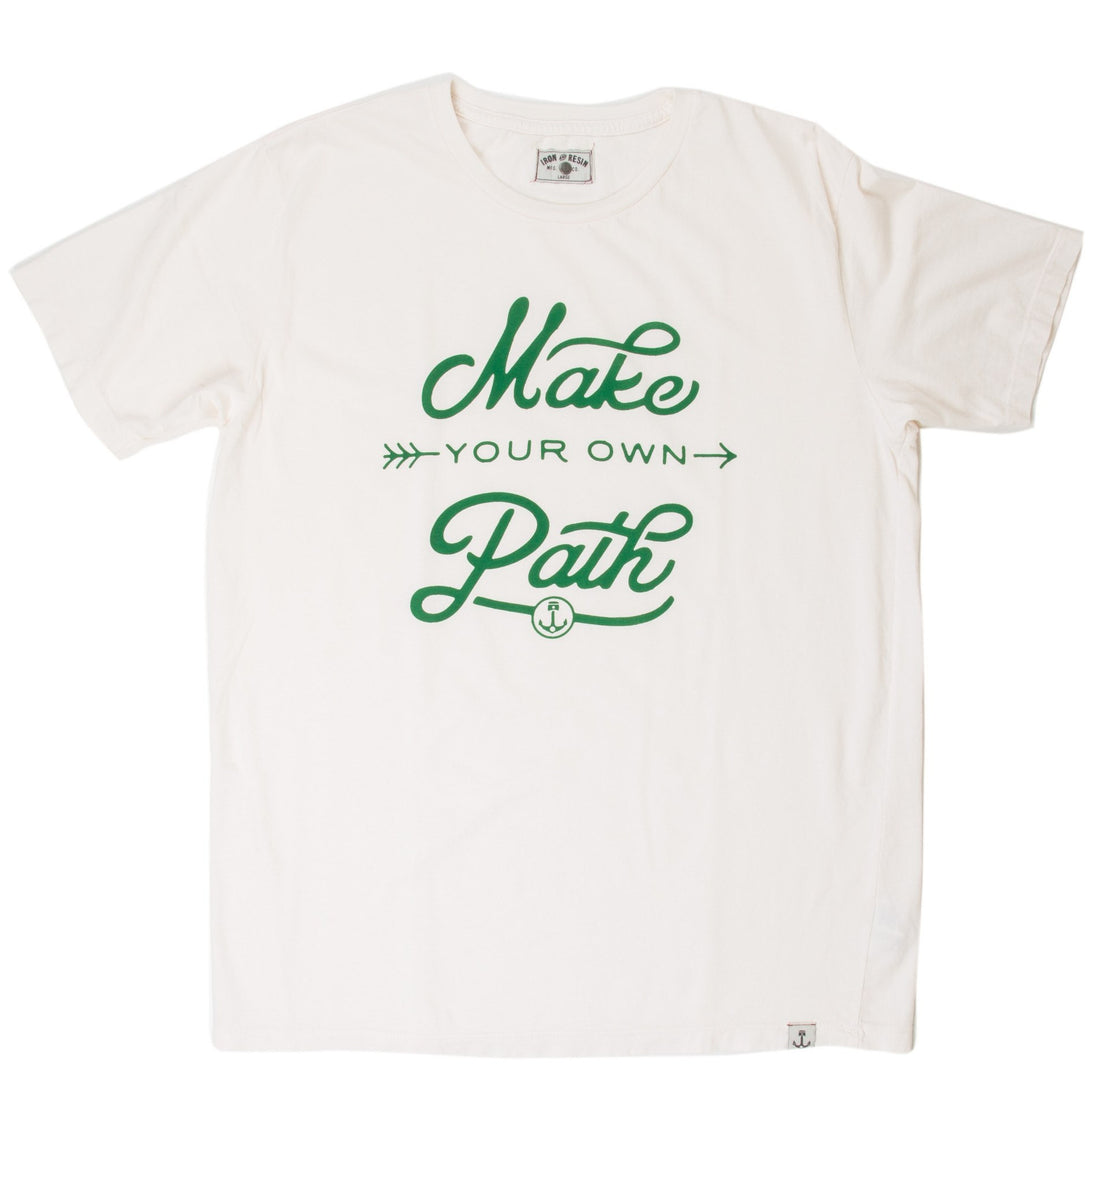 INR Pathmaker Teee - Apparel: Men's: Graphic T-Shirts - Iron and Resin